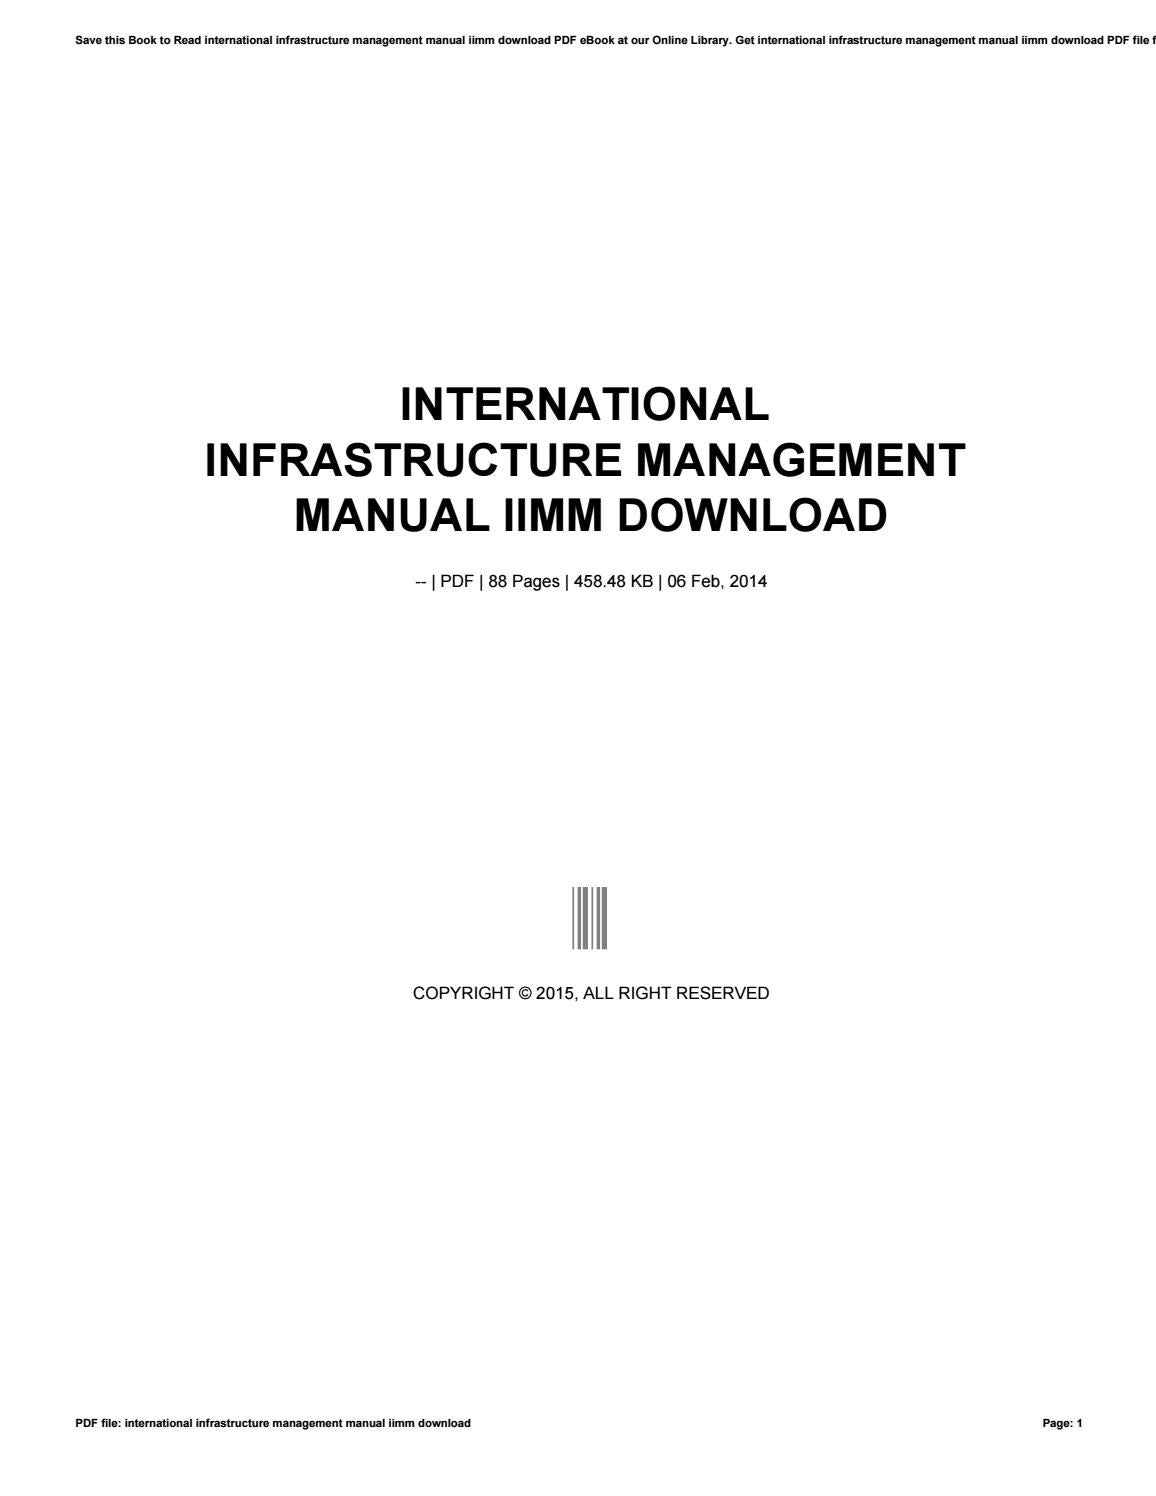 International infrastructure management manual iimm download by preseven3 -  issuu